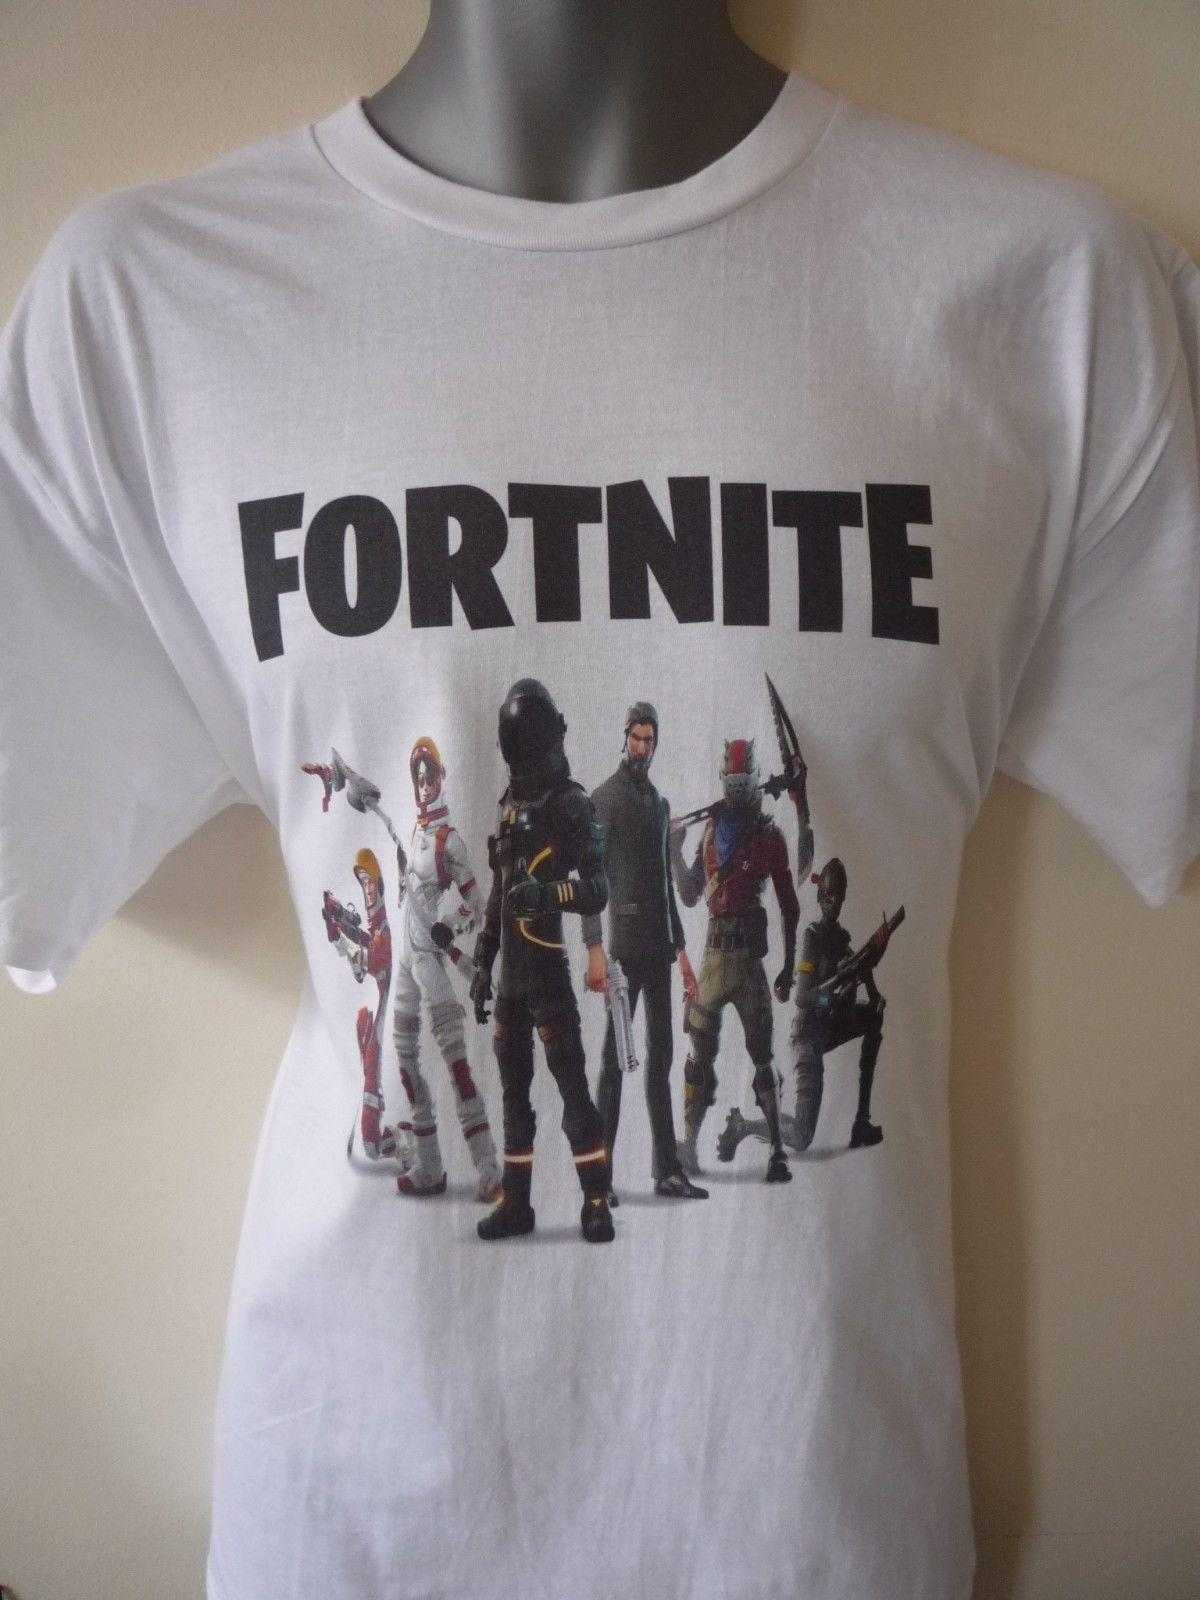 64cebaf4cf4 FORTNITE CHARACTER DESIGN KIDS ADULTS T SHIRT XBOX PSGAMING Funny Unisex  Casual Tee Gift Tees Shirts Cheap Design And Buy T Shirts From Tshirtsinc